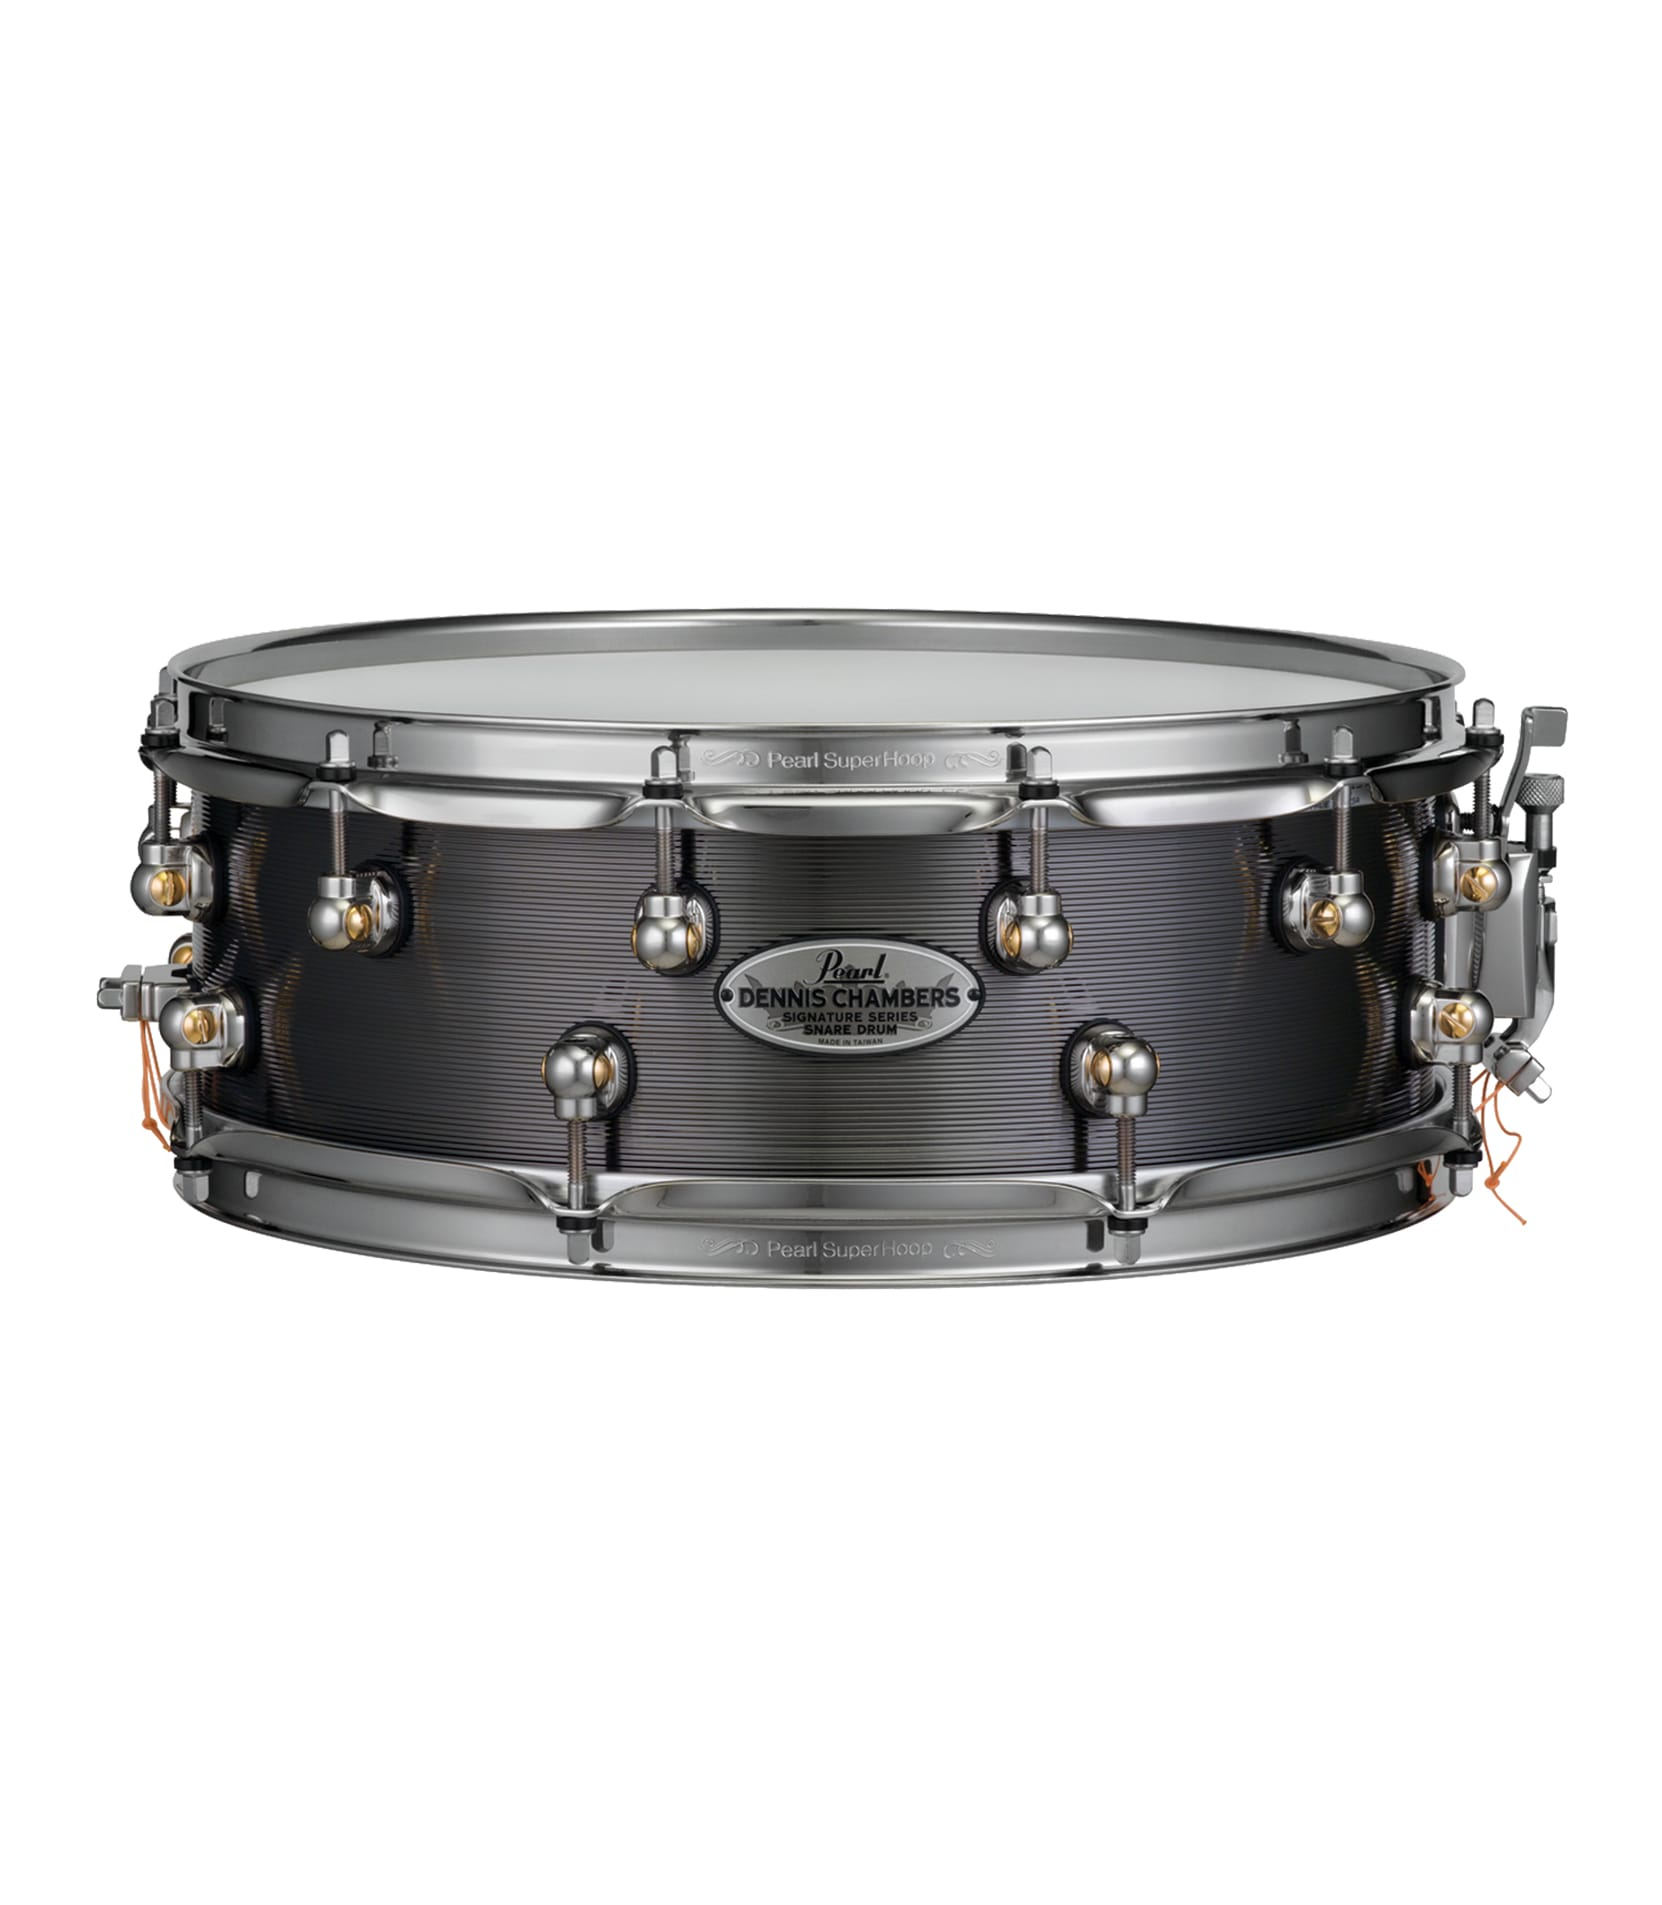 Buy pearl DC1450S N Dennis Chambers 14x5 0 Snare Drum Melody House